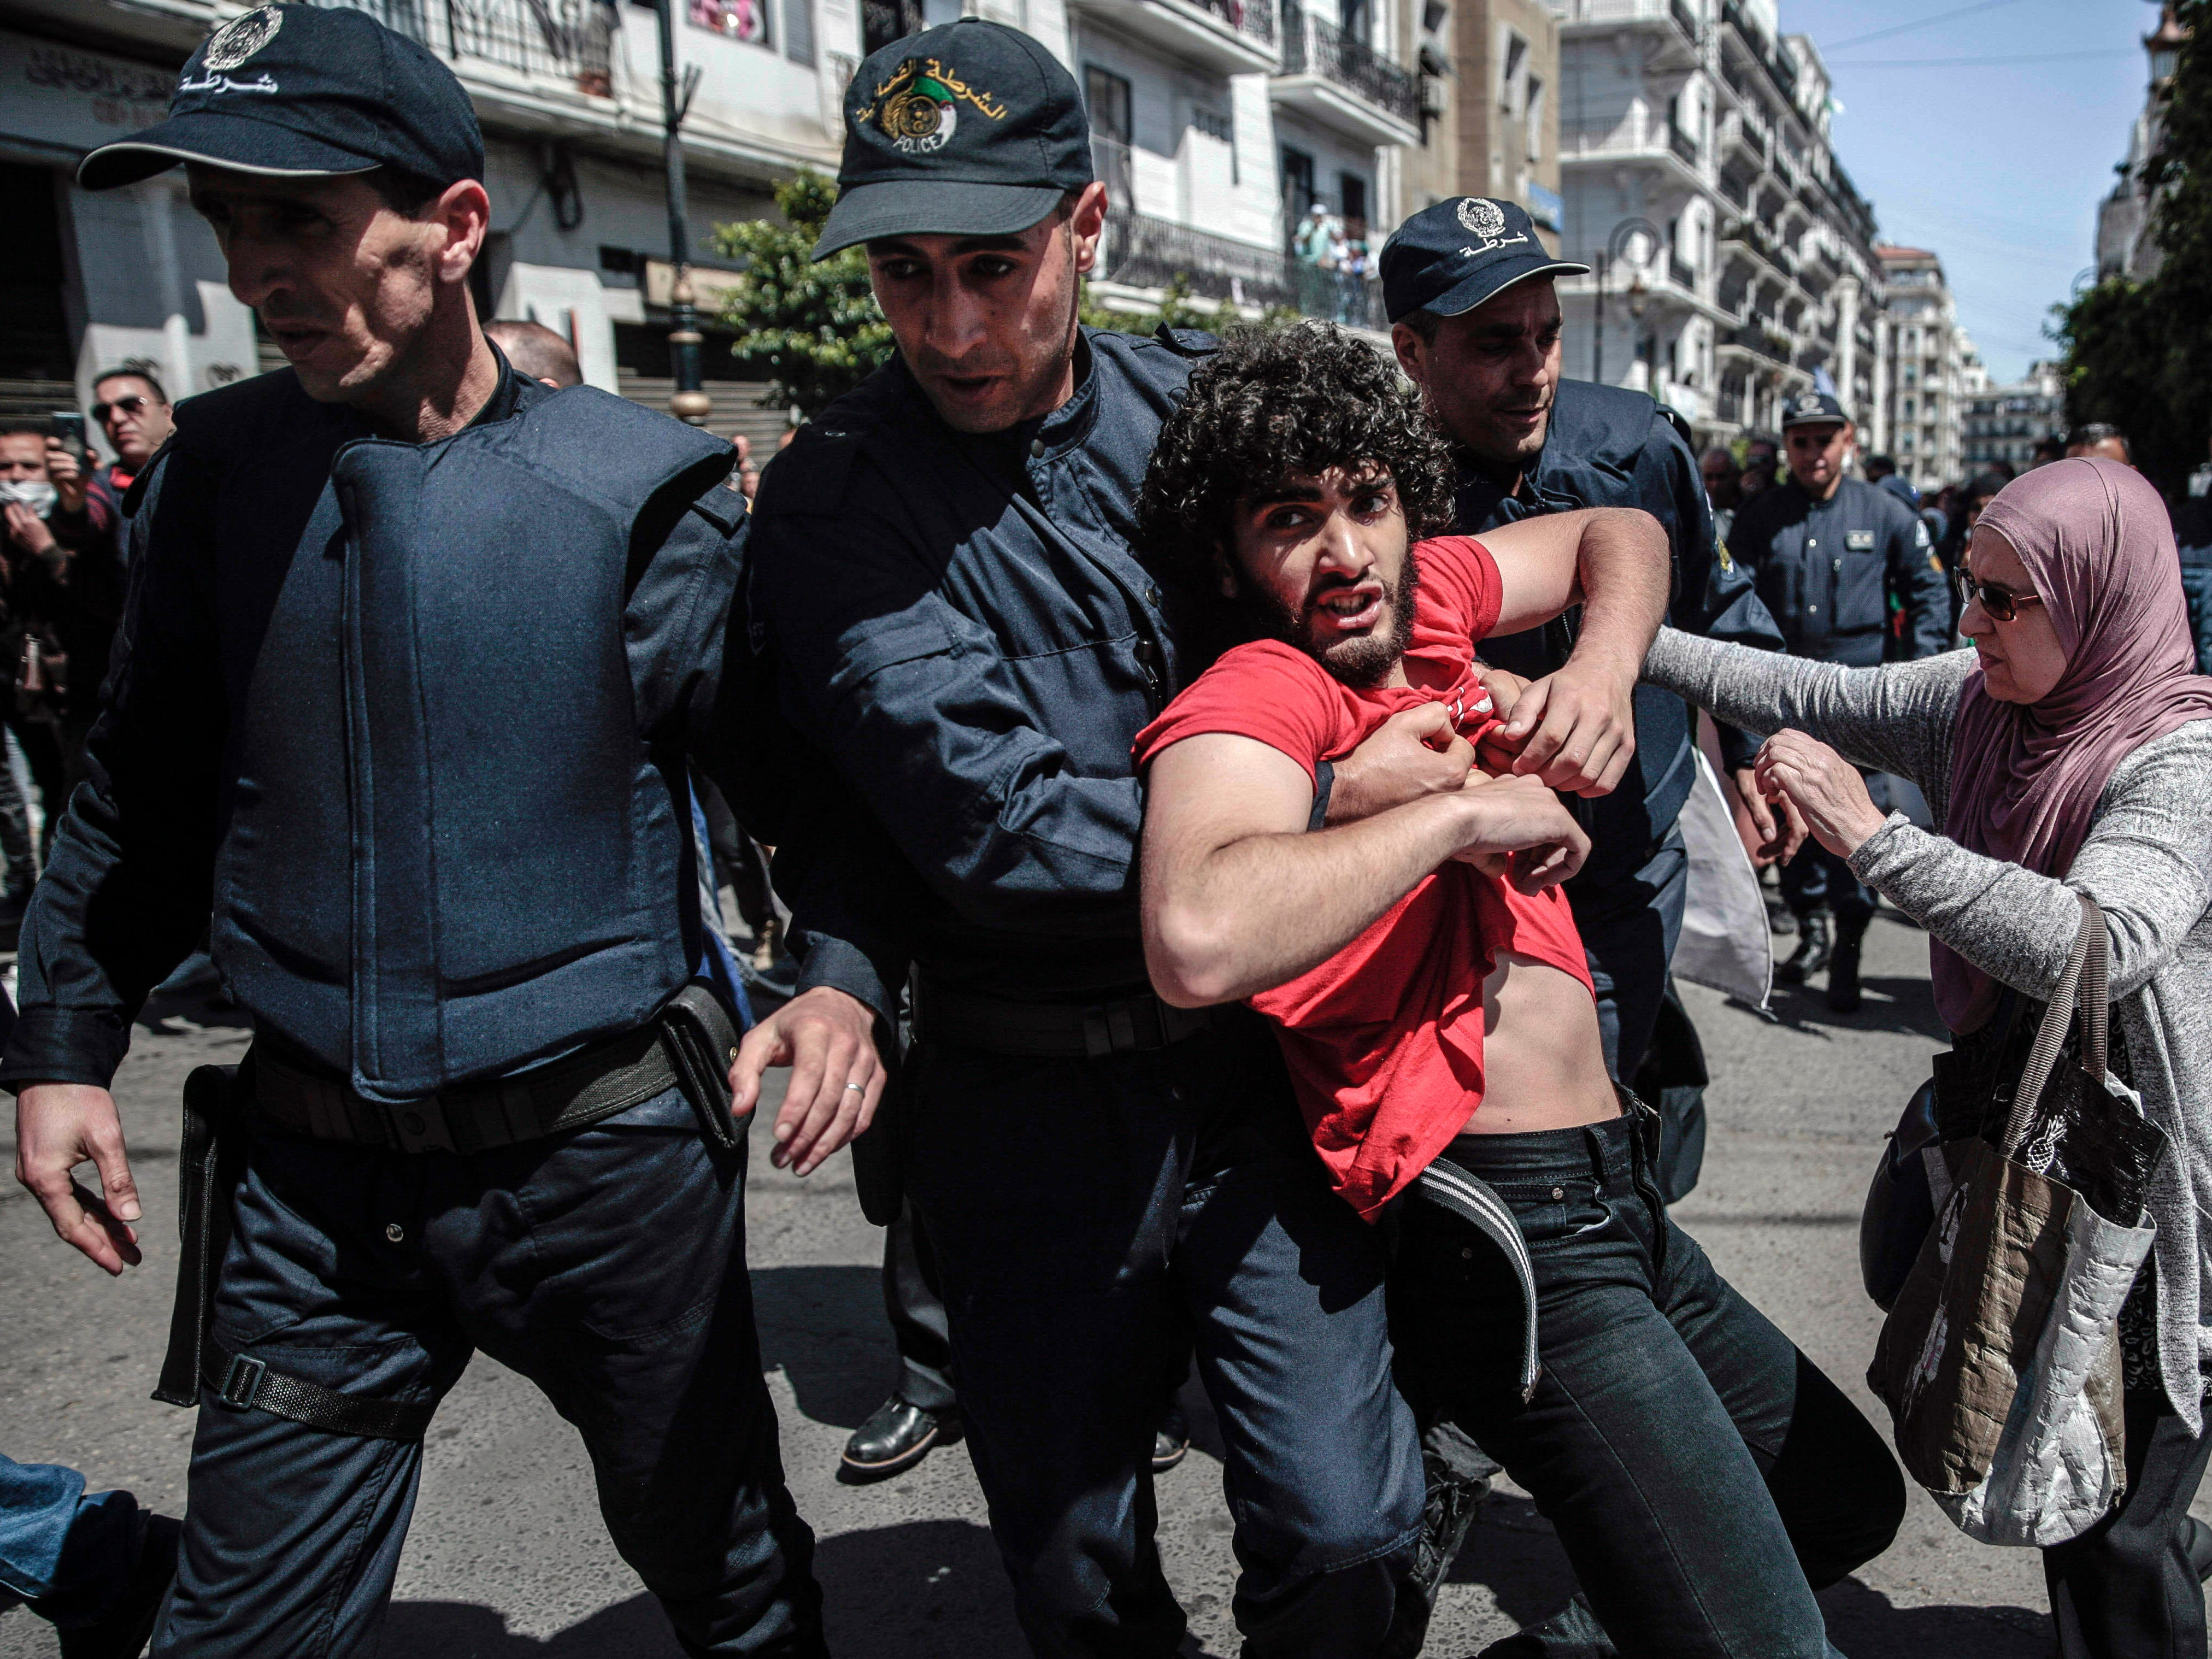 Police arrest a man as they attempt to disperse a demonstration for students in Algiers, Algeria, Tuesday, April 9, 2019. Algerian police used pepper spray and a water cannon to break up a group of students protesting in the country's capital, less than an hour after the country's parliament chose an interim leader.